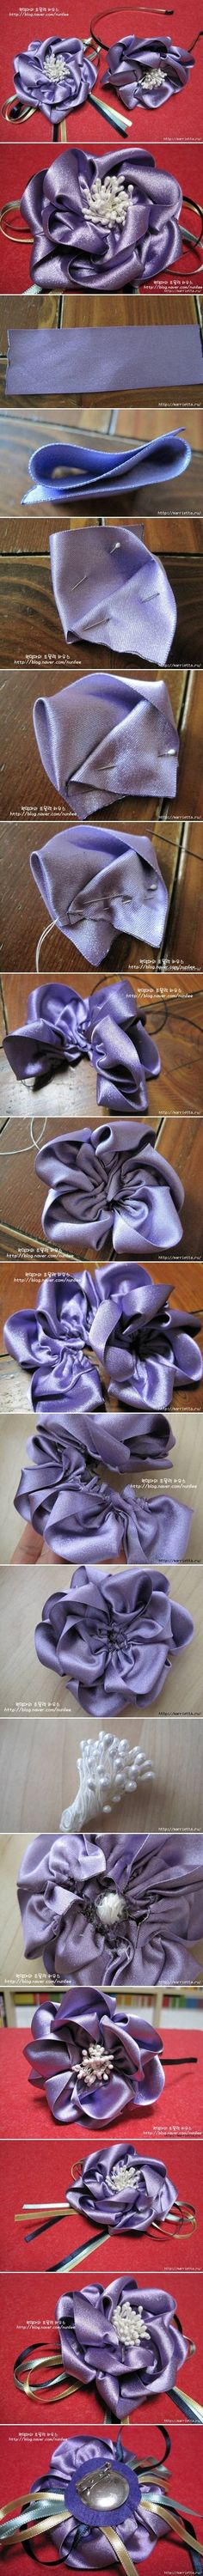 DIY Satin Ribbon Flower Brooch DIY Satin Ribbon Flower Brooch by diyforever